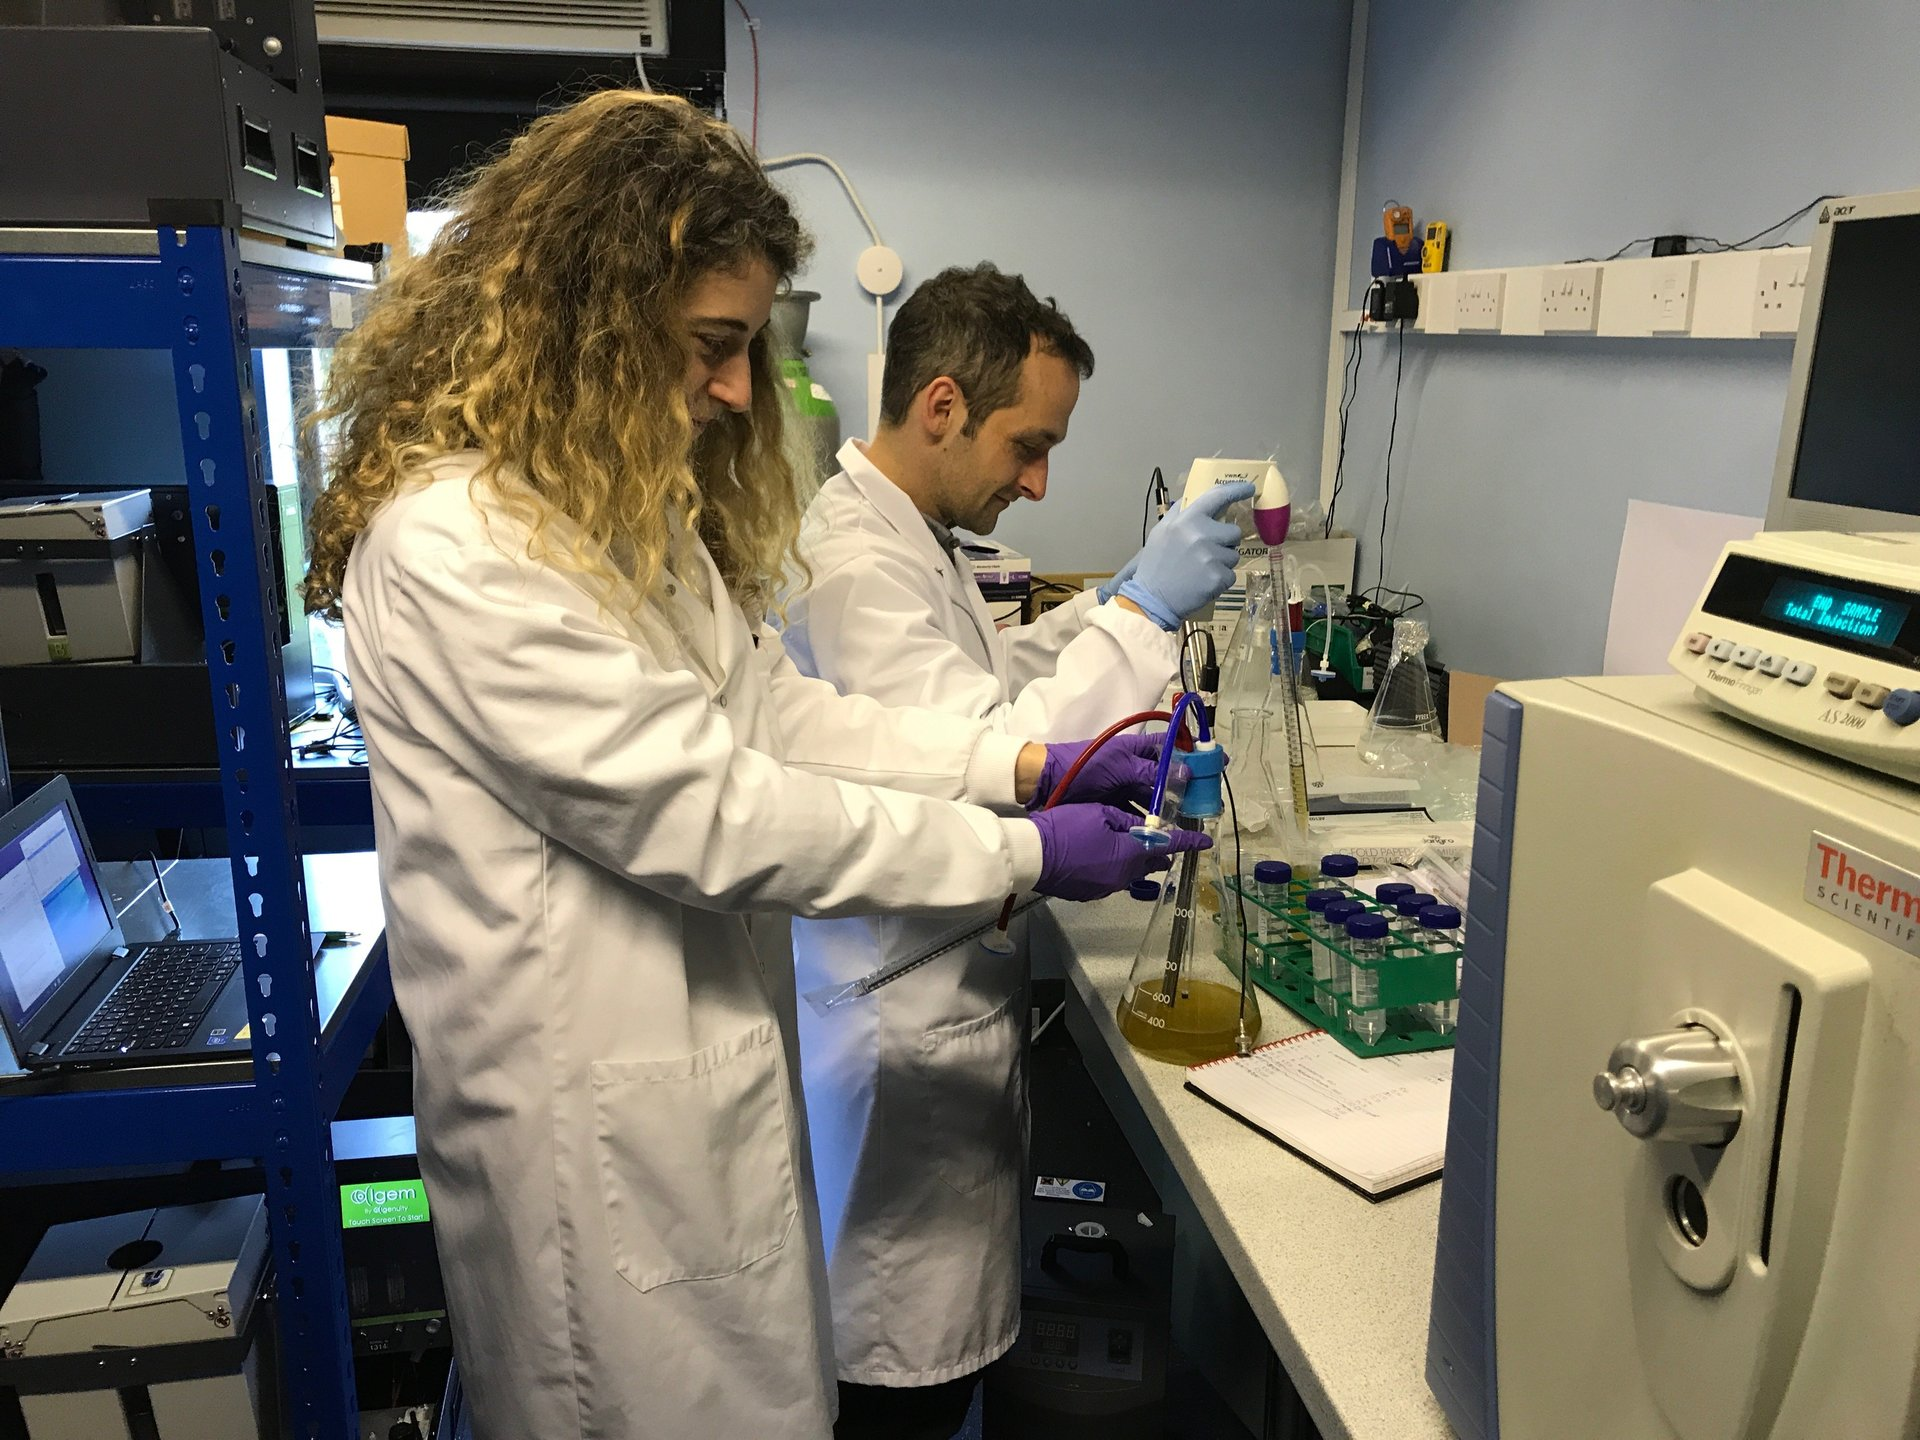 Male and Female Scientist working with algae cultures in Erlenmeyer flasks